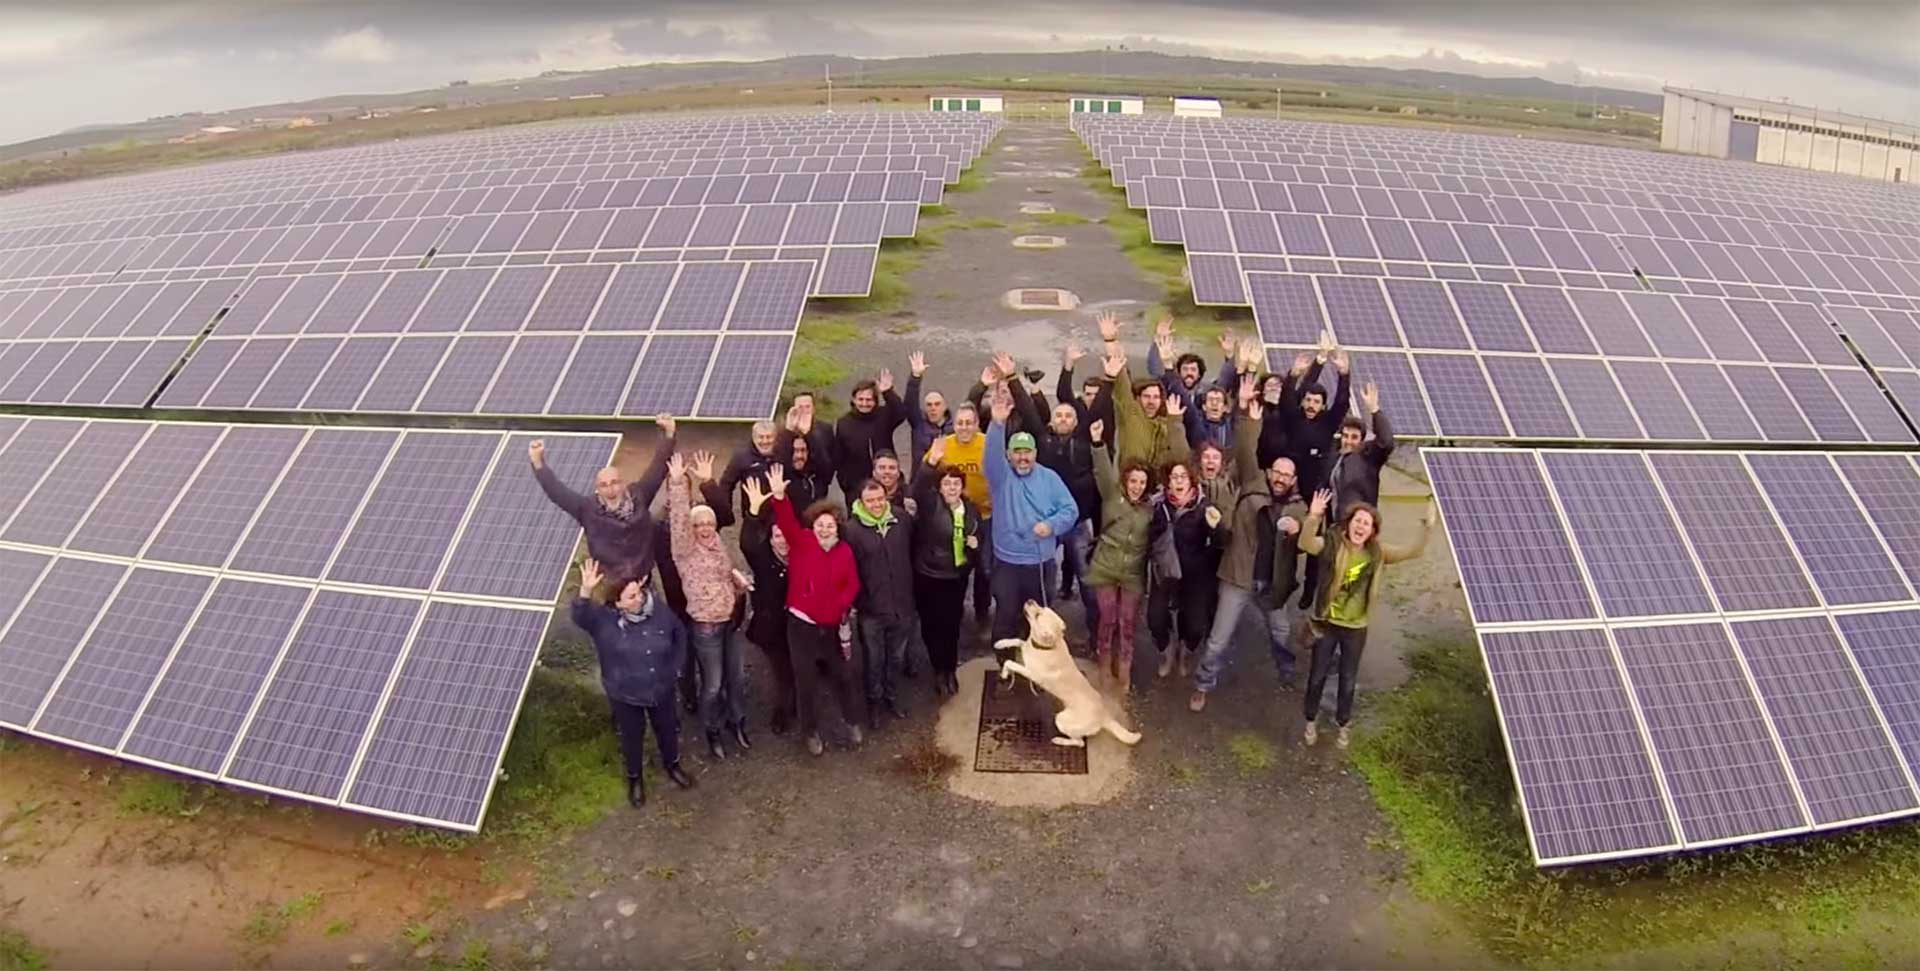 Girona, Spain: Cooperative breaks the mould to provide renewable energy